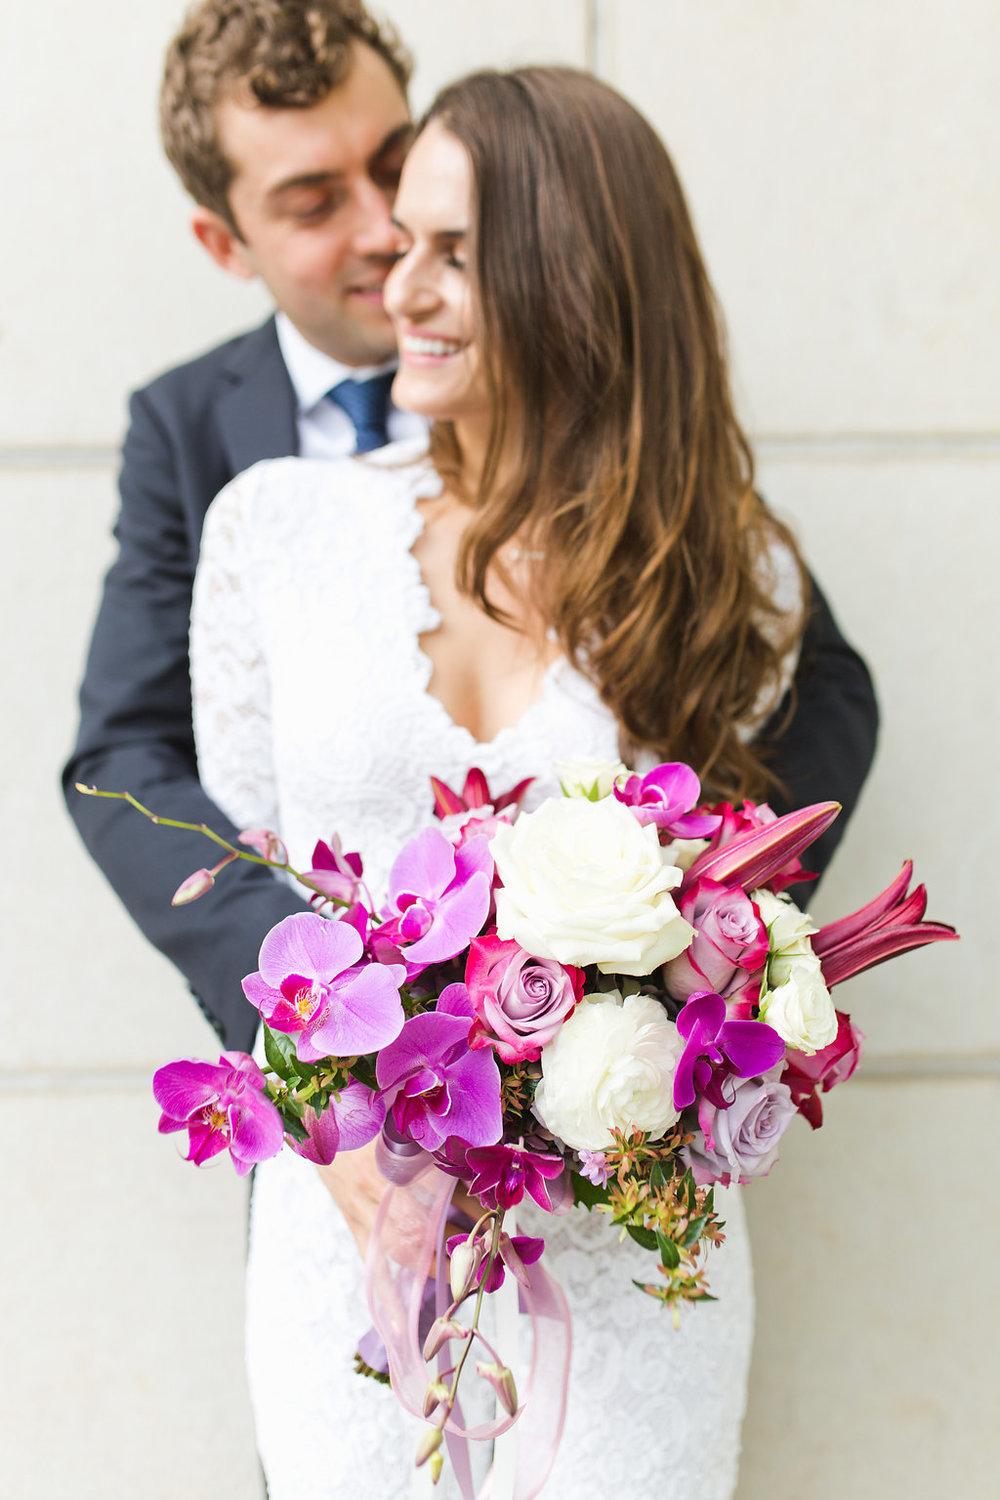 Seattle Courthouse Wedding | Seattle Municipal Court | Downtown Seattle Wedding | Intimate Elopement Wedding | Beautiful Simple Courthouse Wedding | Bride and Groom Portrait | White Wedding Jumpsuit Outfit | Couple Posing